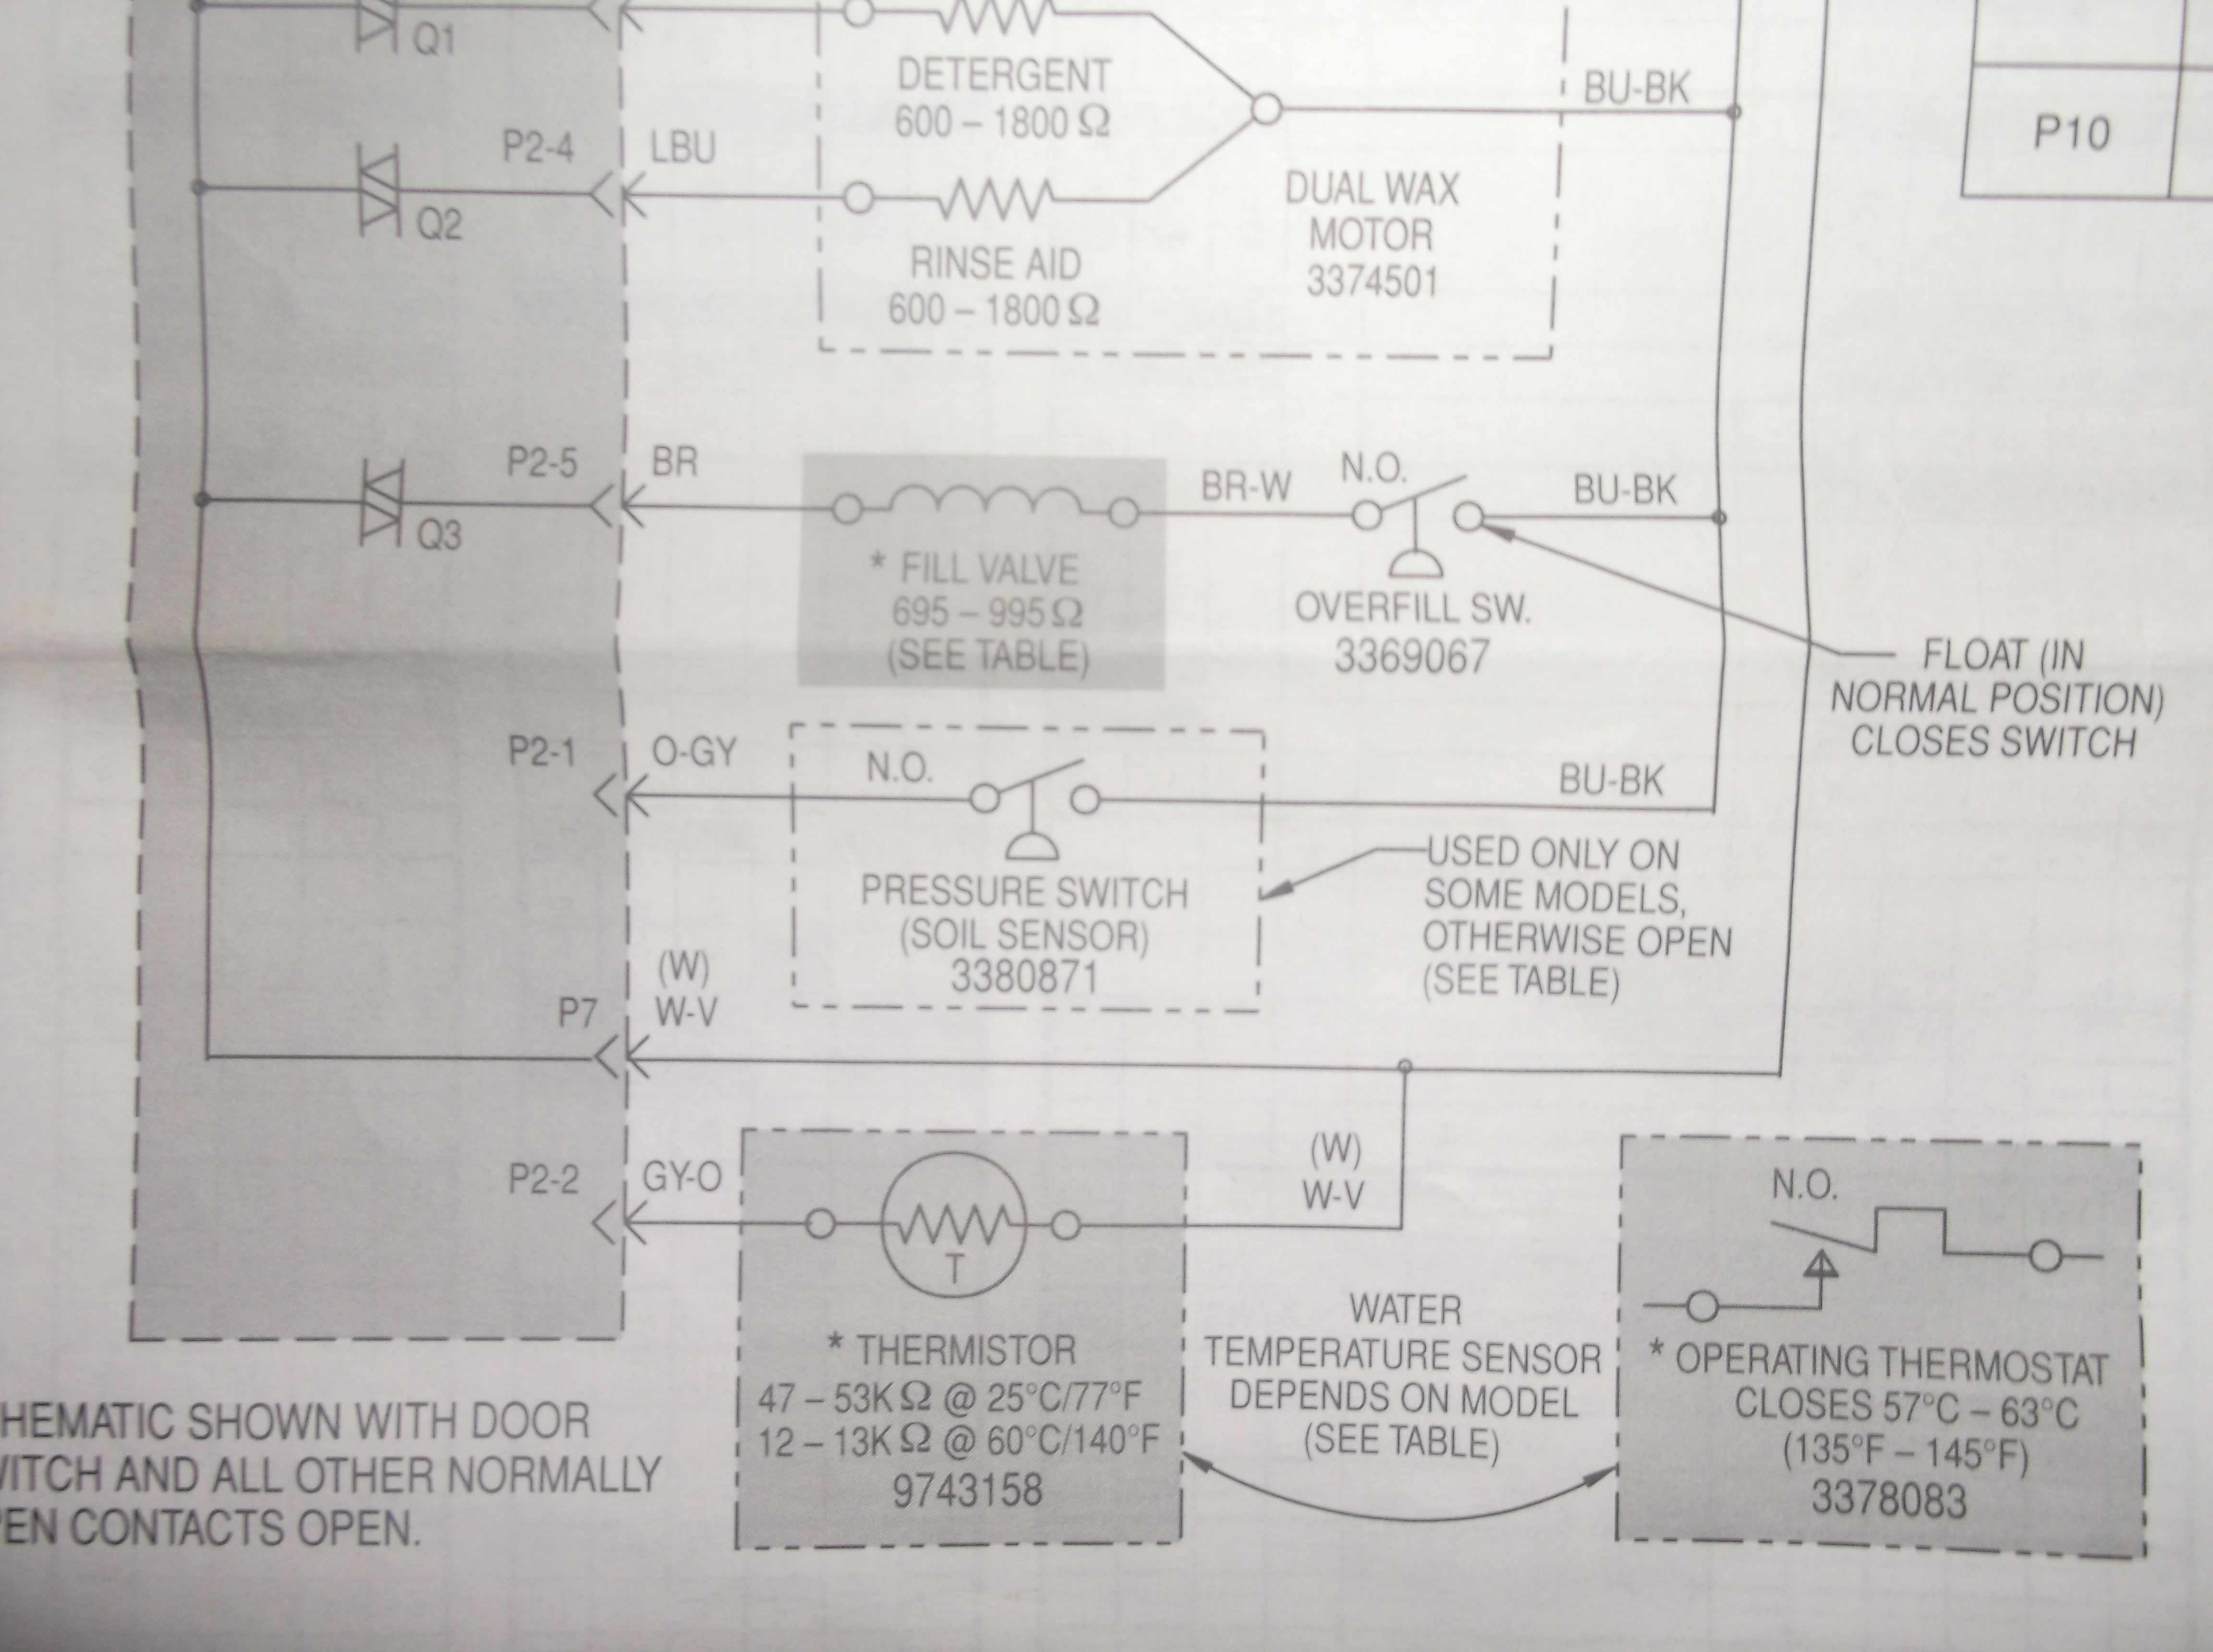 Dscf on Kenmore 665 Dishwasher Wiring Diagram